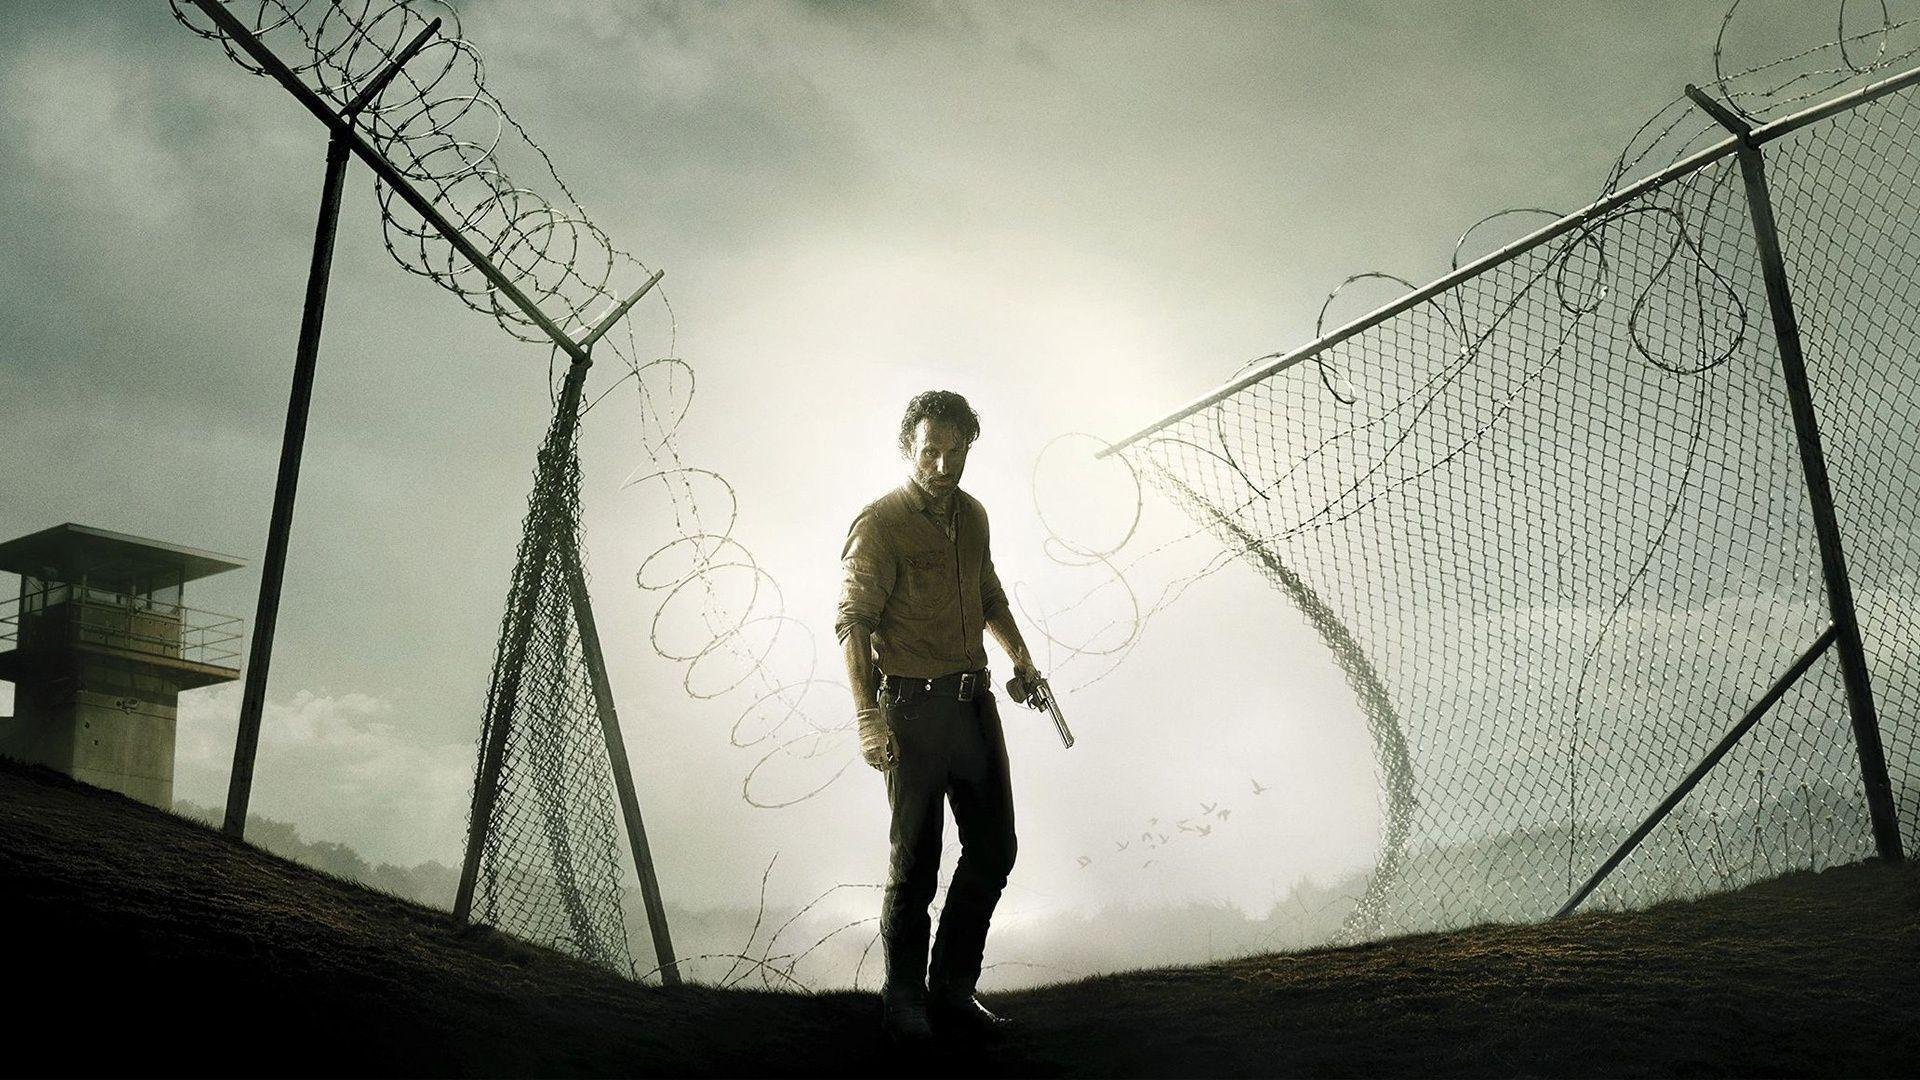 Walking Dead Wallpapers For Android: The Walking Dead Wallpapers 1920x1080